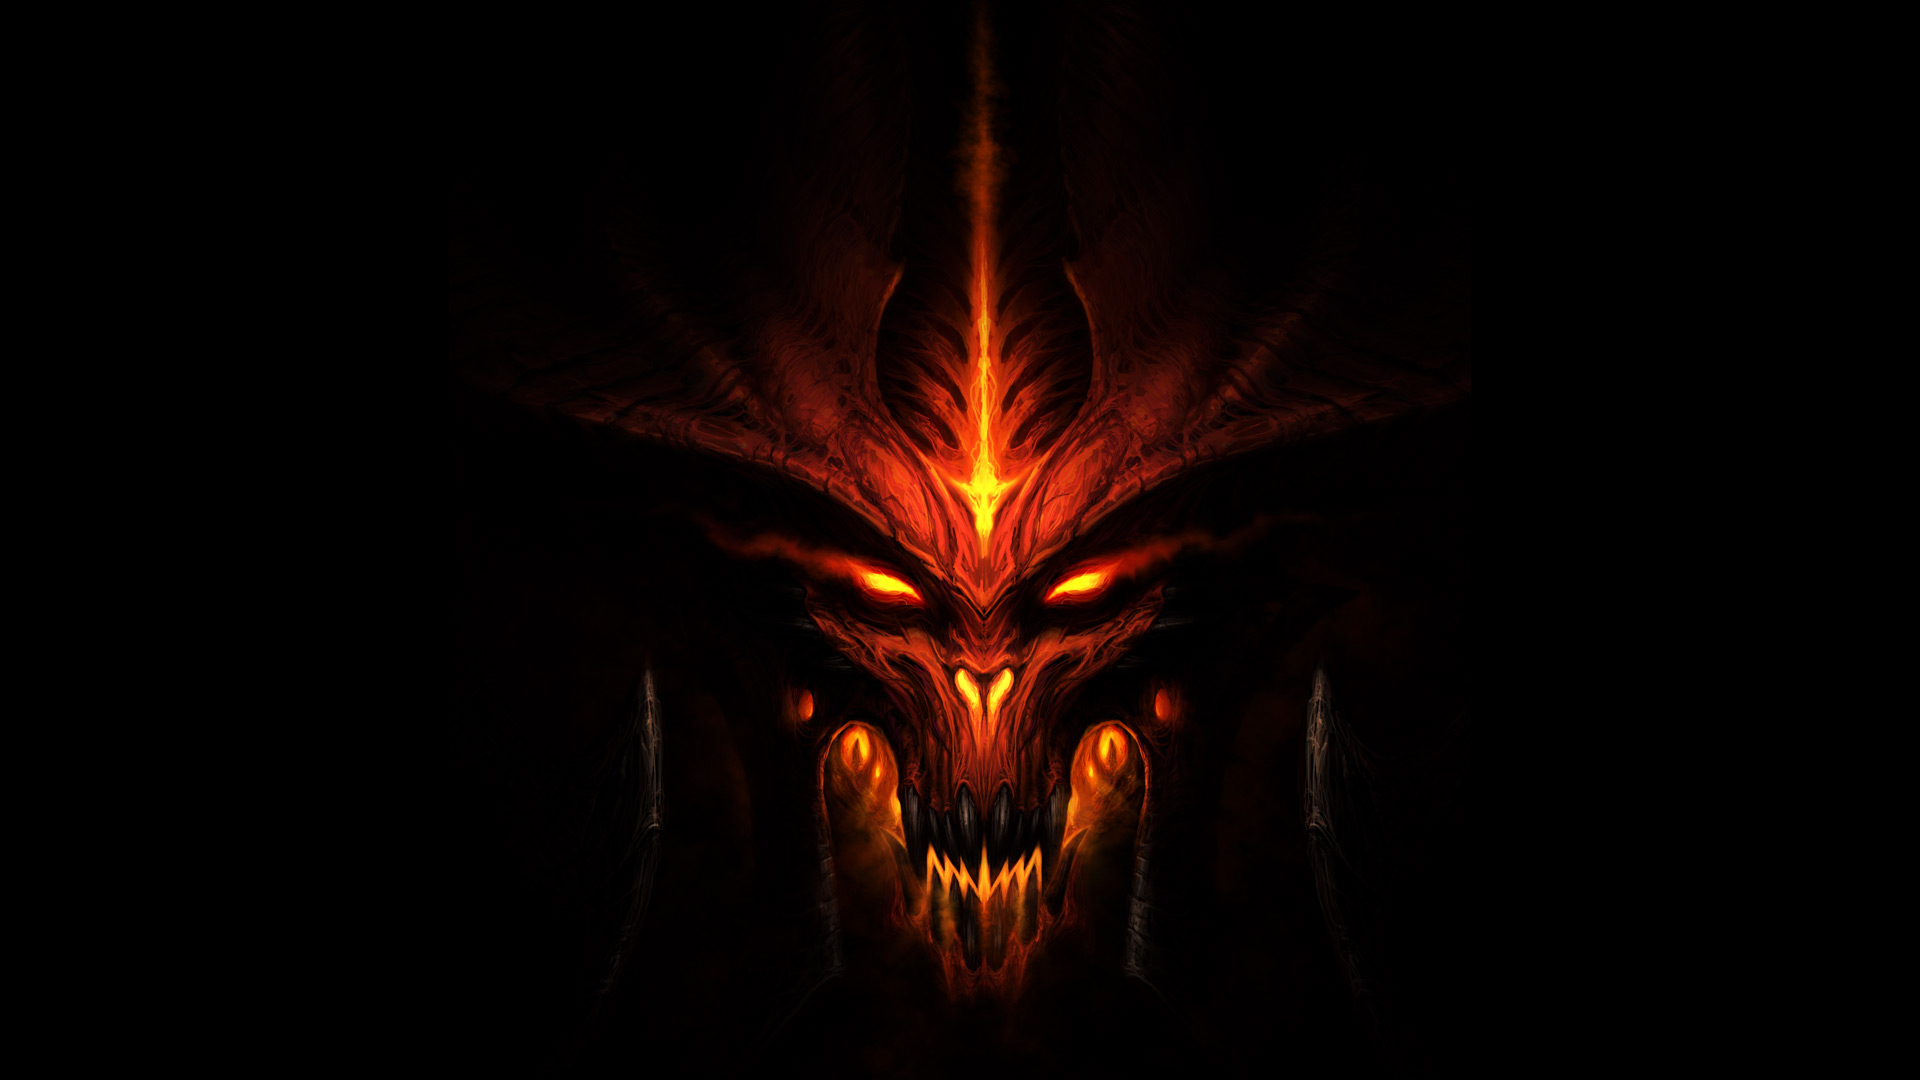 diablo wallpaper video game wallpaper share this video game background 1920x1080